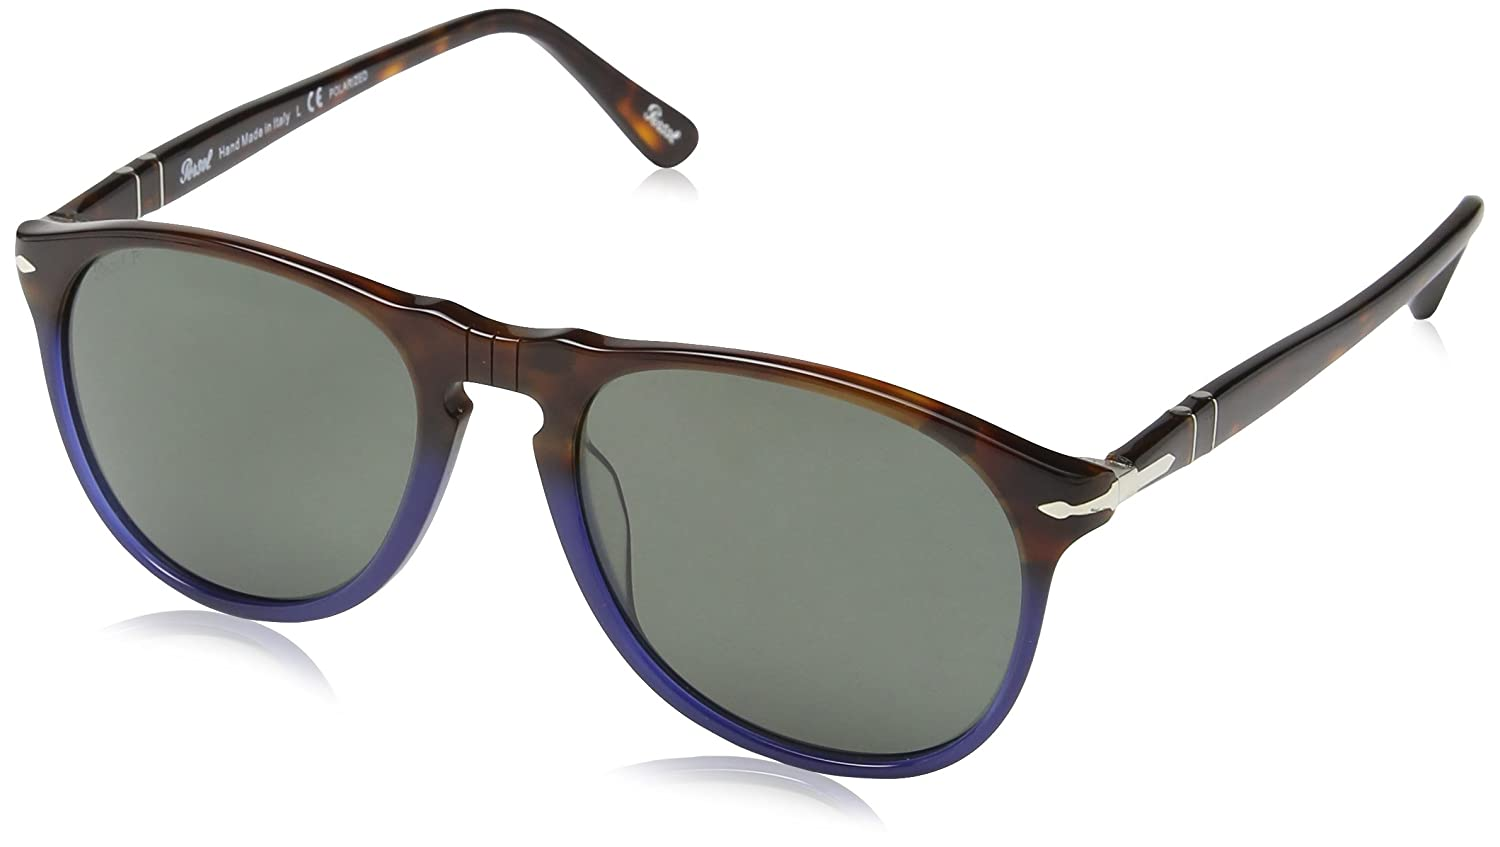 702ae7a31e45 Persol 1022/58 Brown-blue 9649S Oval Sunglasses Polarised Lens Category 3:  Amazon.in: Clothing & Accessories